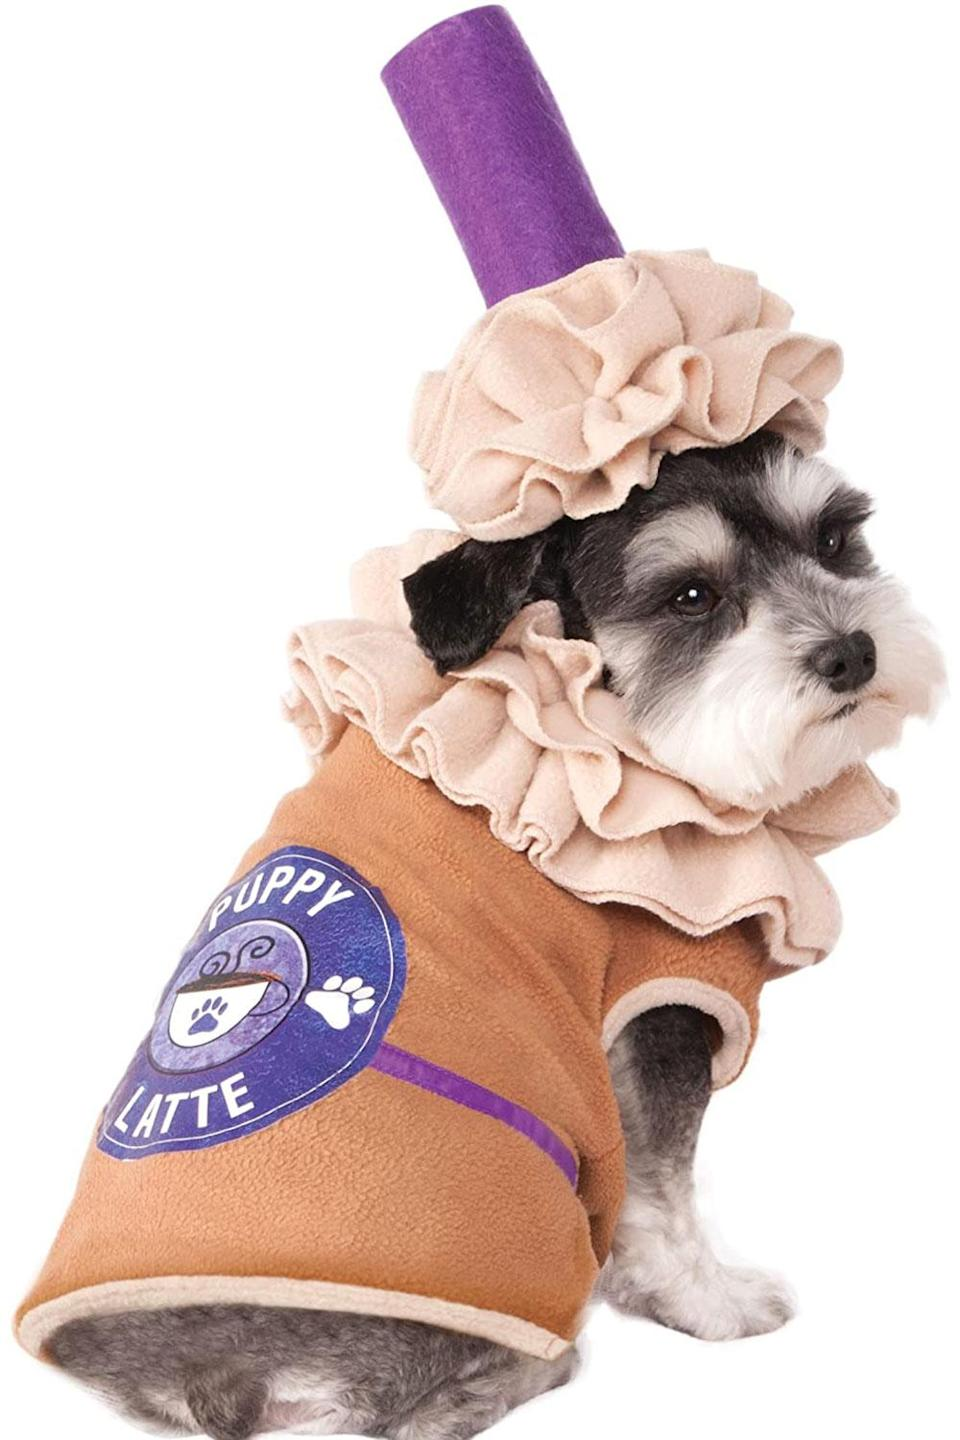 """<p>Get your pet a Halloween costume they can wear all fall! </p> <p><strong>Buy it!</strong> Rubie's Puppy Latte Pet Costume, $17.68; <a href=""""https://www.amazon.com/Rubies-Puppy-Latte-Costume-Medium/dp/B00ZHS66PI?&linkCode=ll1&tag=pogiftfordogownersobsessedwithpumpkinspicedlatteskbender0921-20&linkId=9f867bc528630922305d3fce0daeb89c&language=en_US&ref_=as_li_ss_tl"""" rel=""""nofollow noopener"""" target=""""_blank"""" data-ylk=""""slk:Amazon.com"""" class=""""link rapid-noclick-resp"""">Amazon.com</a></p>"""